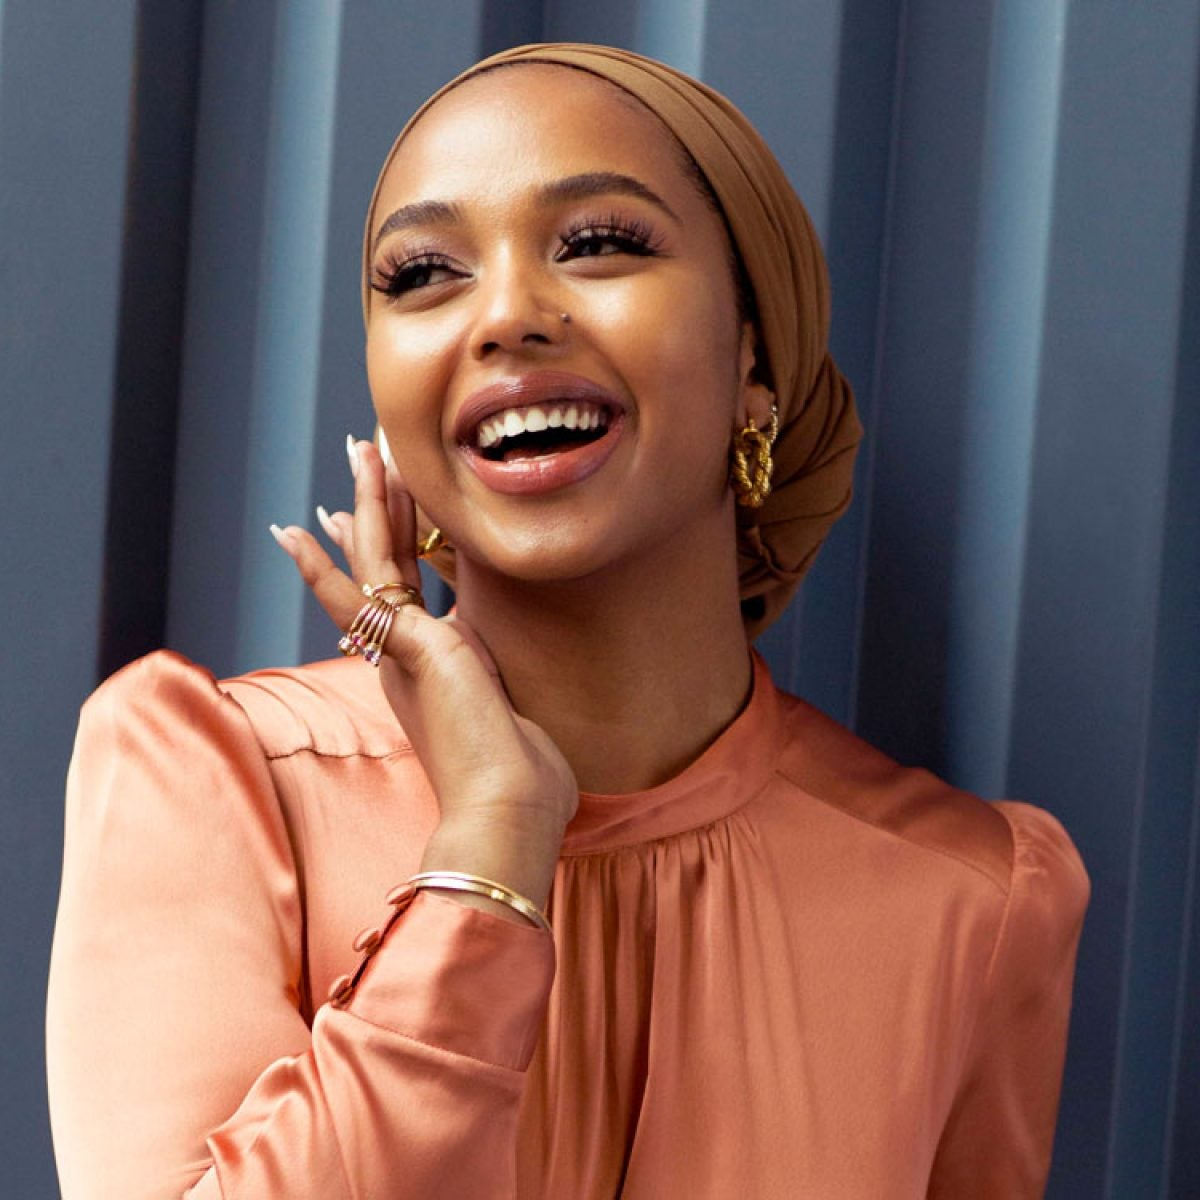 ASOS Partners With Modest Wear Influencer Shahd Batal For Exclusive Style Edit